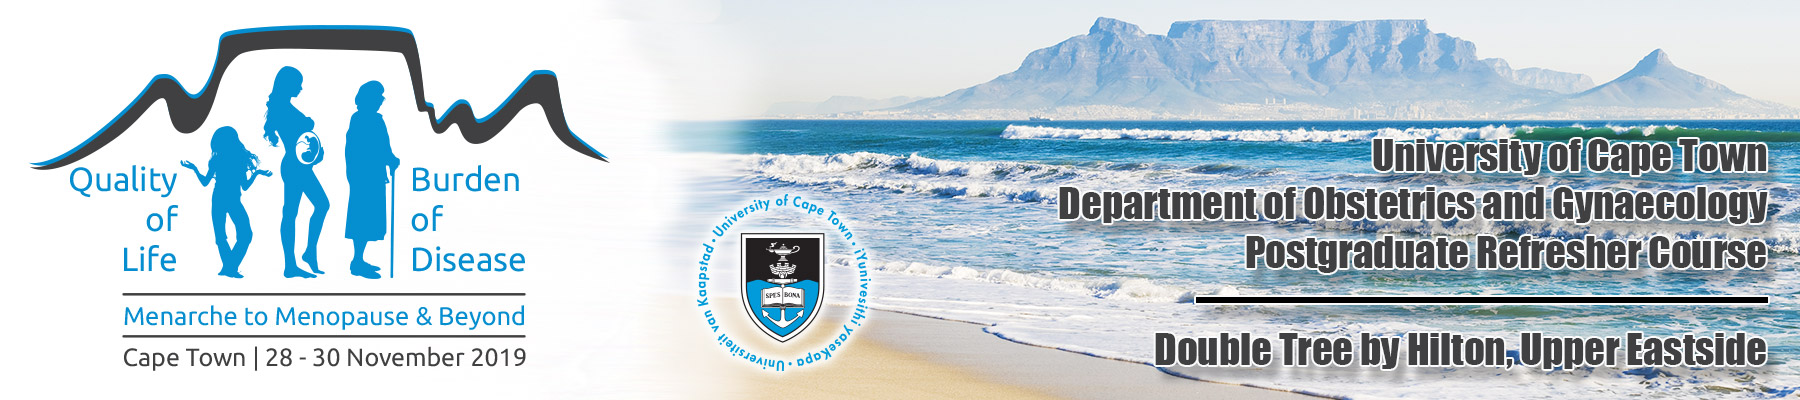 UCT OG Refresher Course